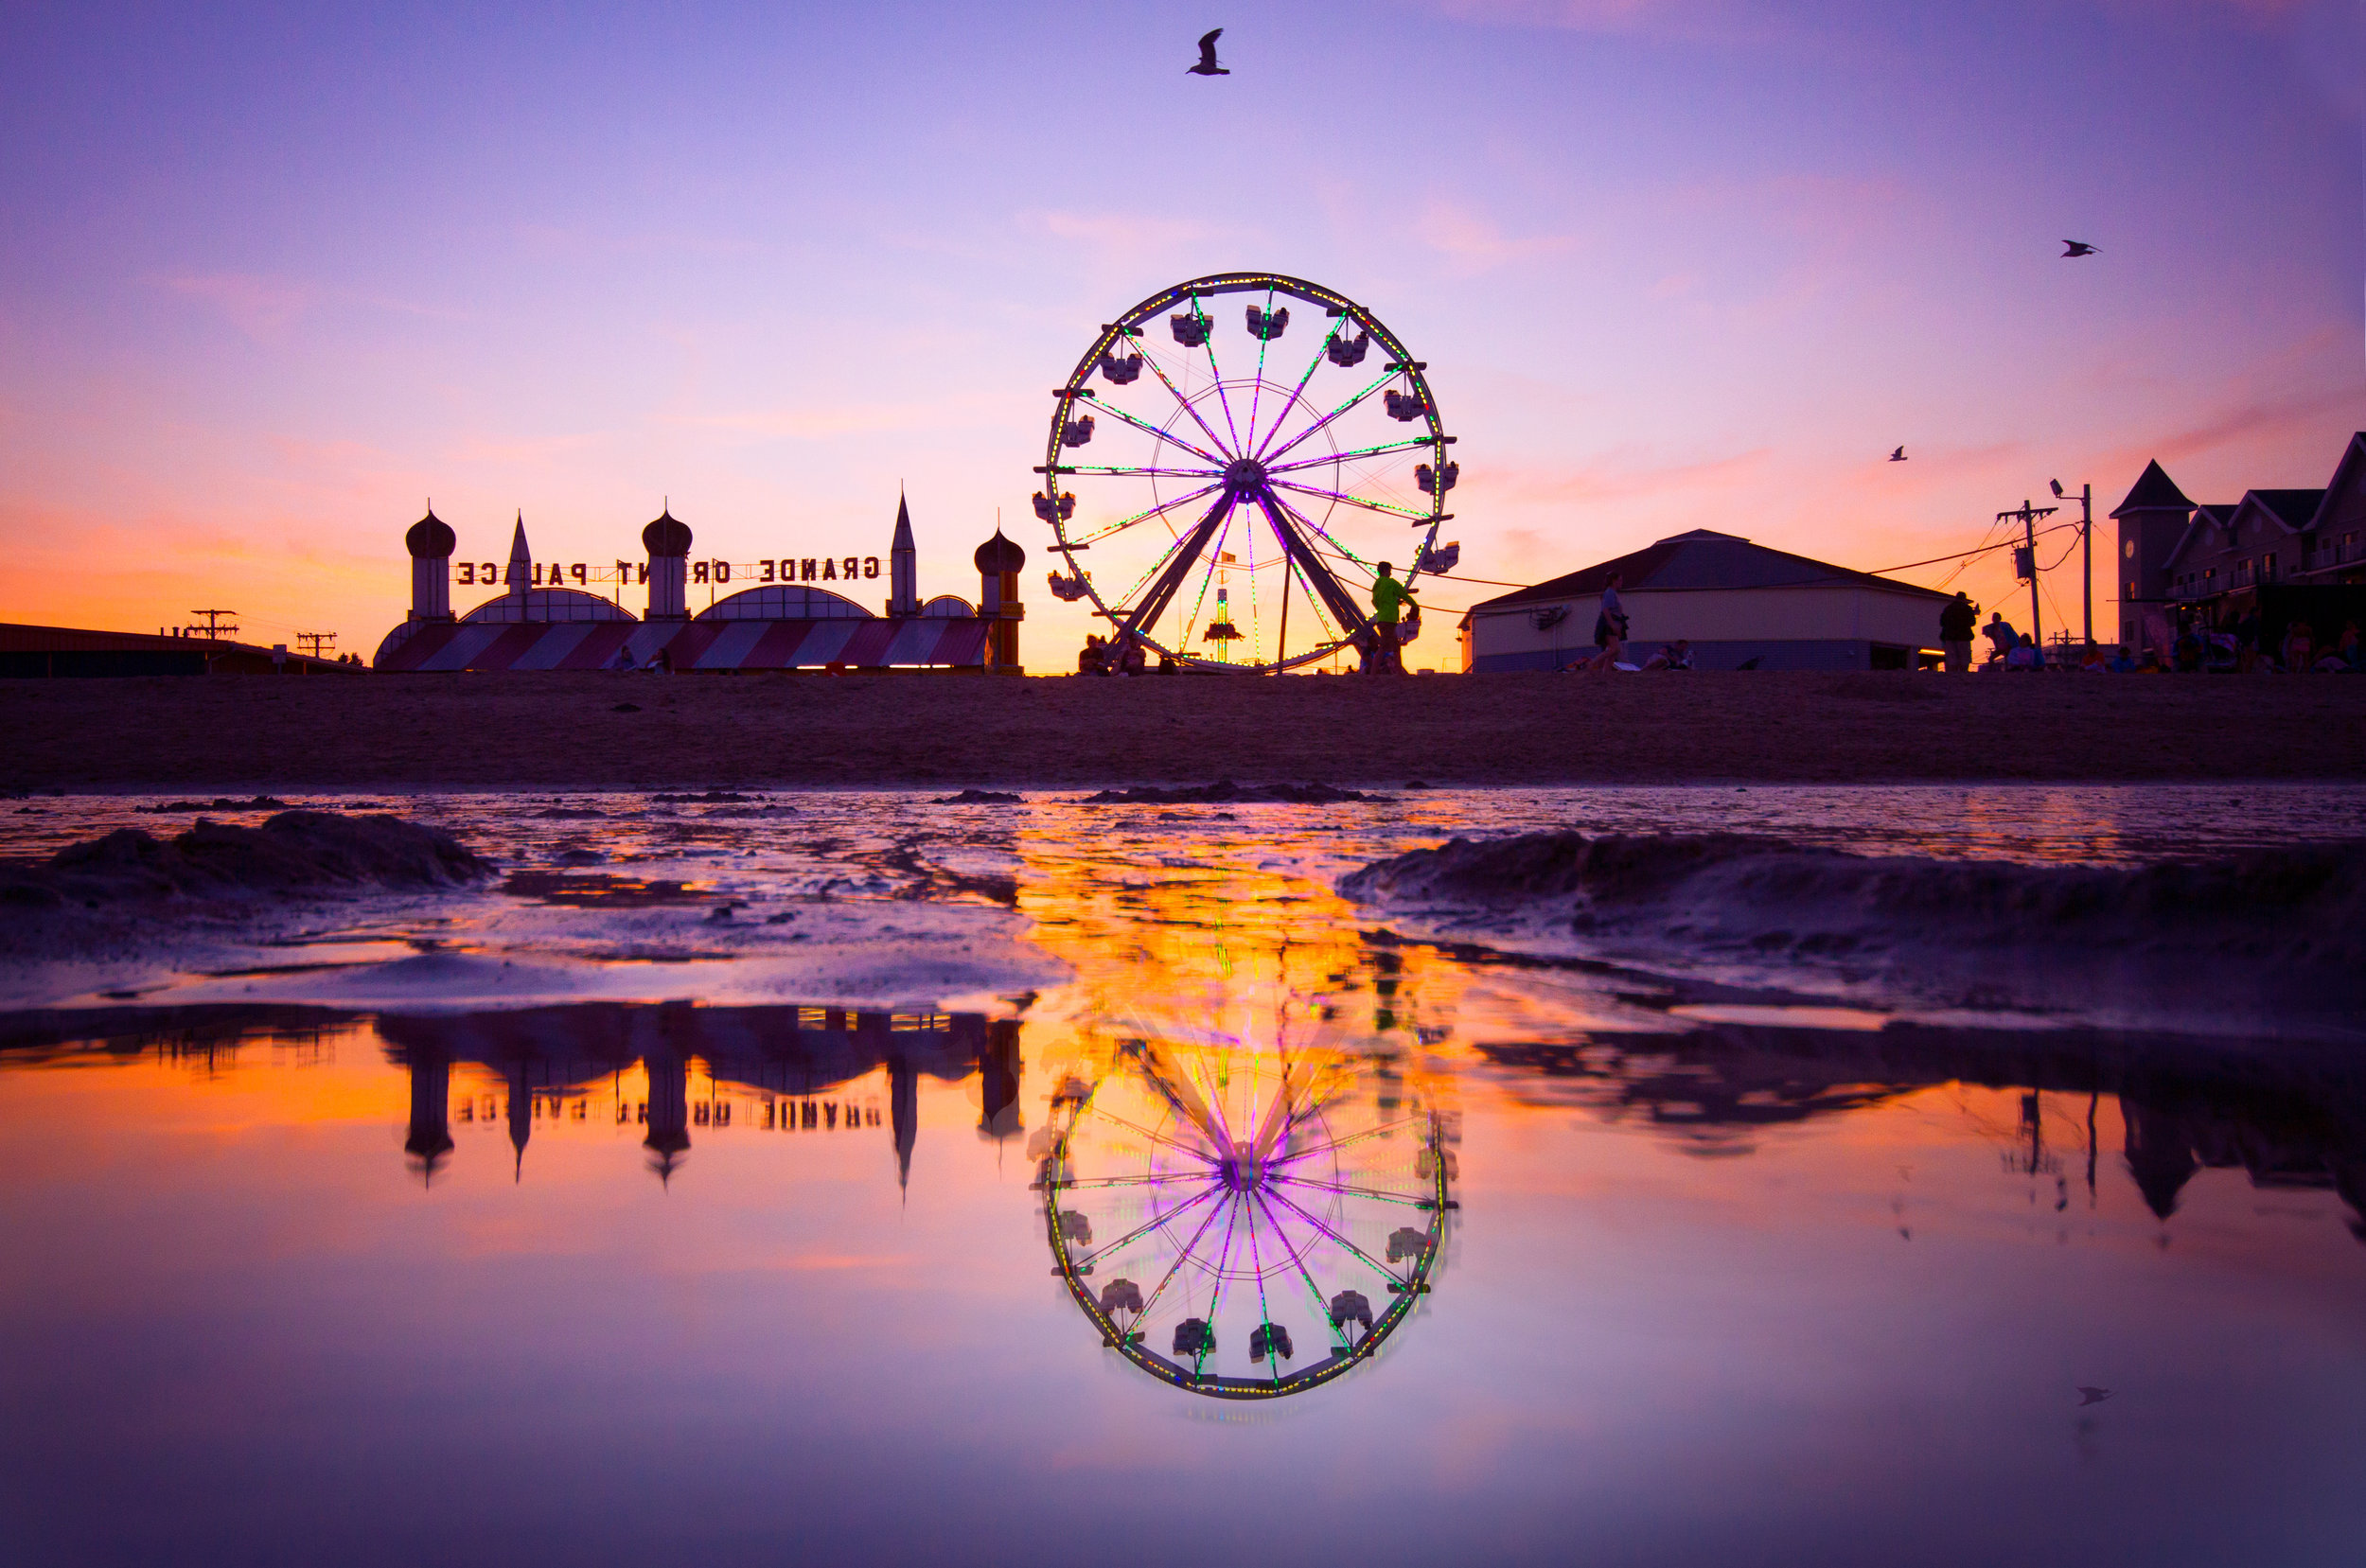 wheel-sunset-reflection-sml-2.jpg